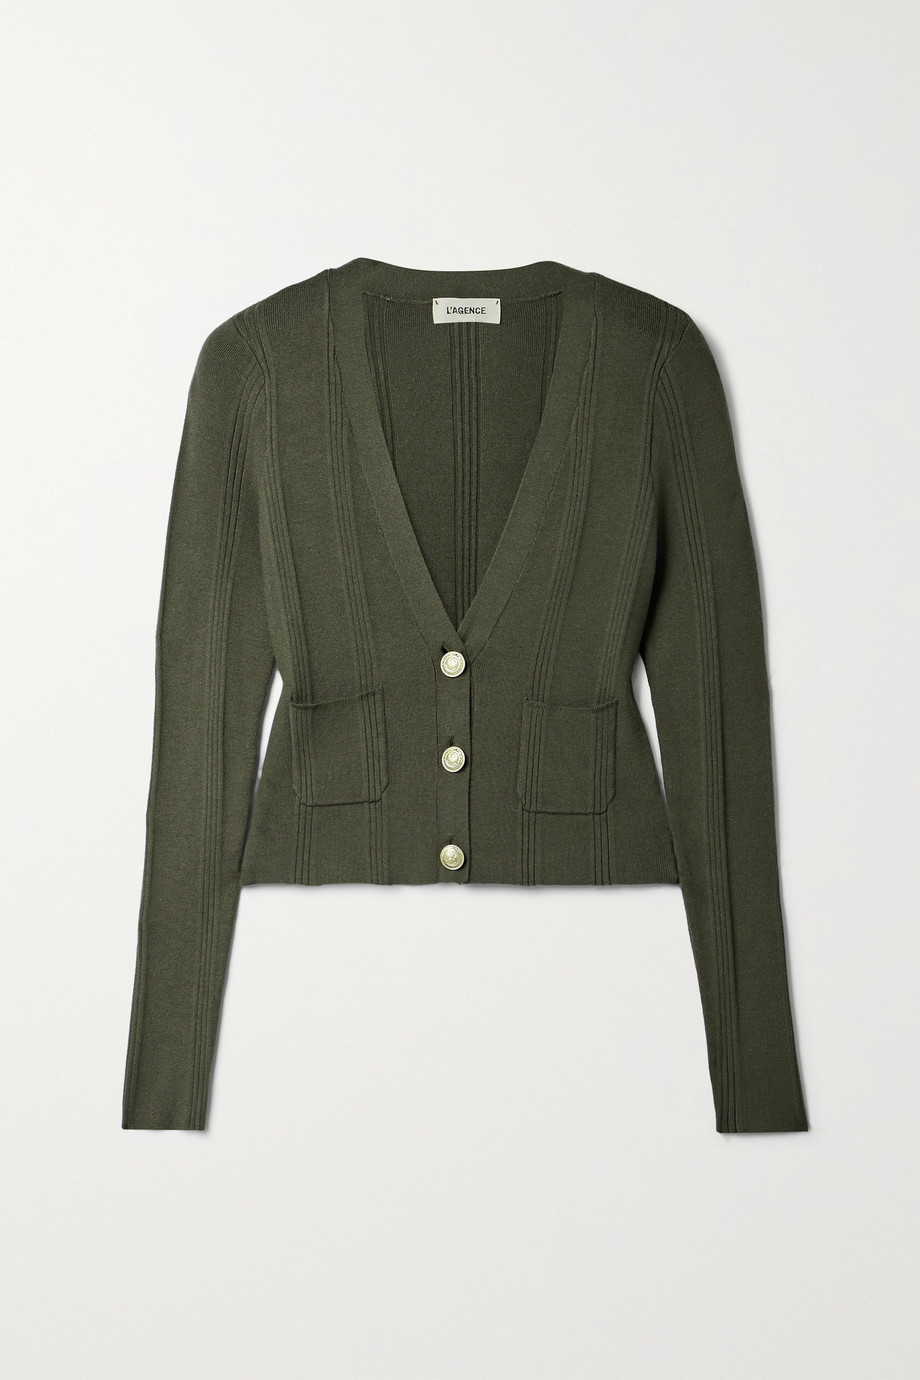 L'AGENCE Jamie ribbed-knit cardigan